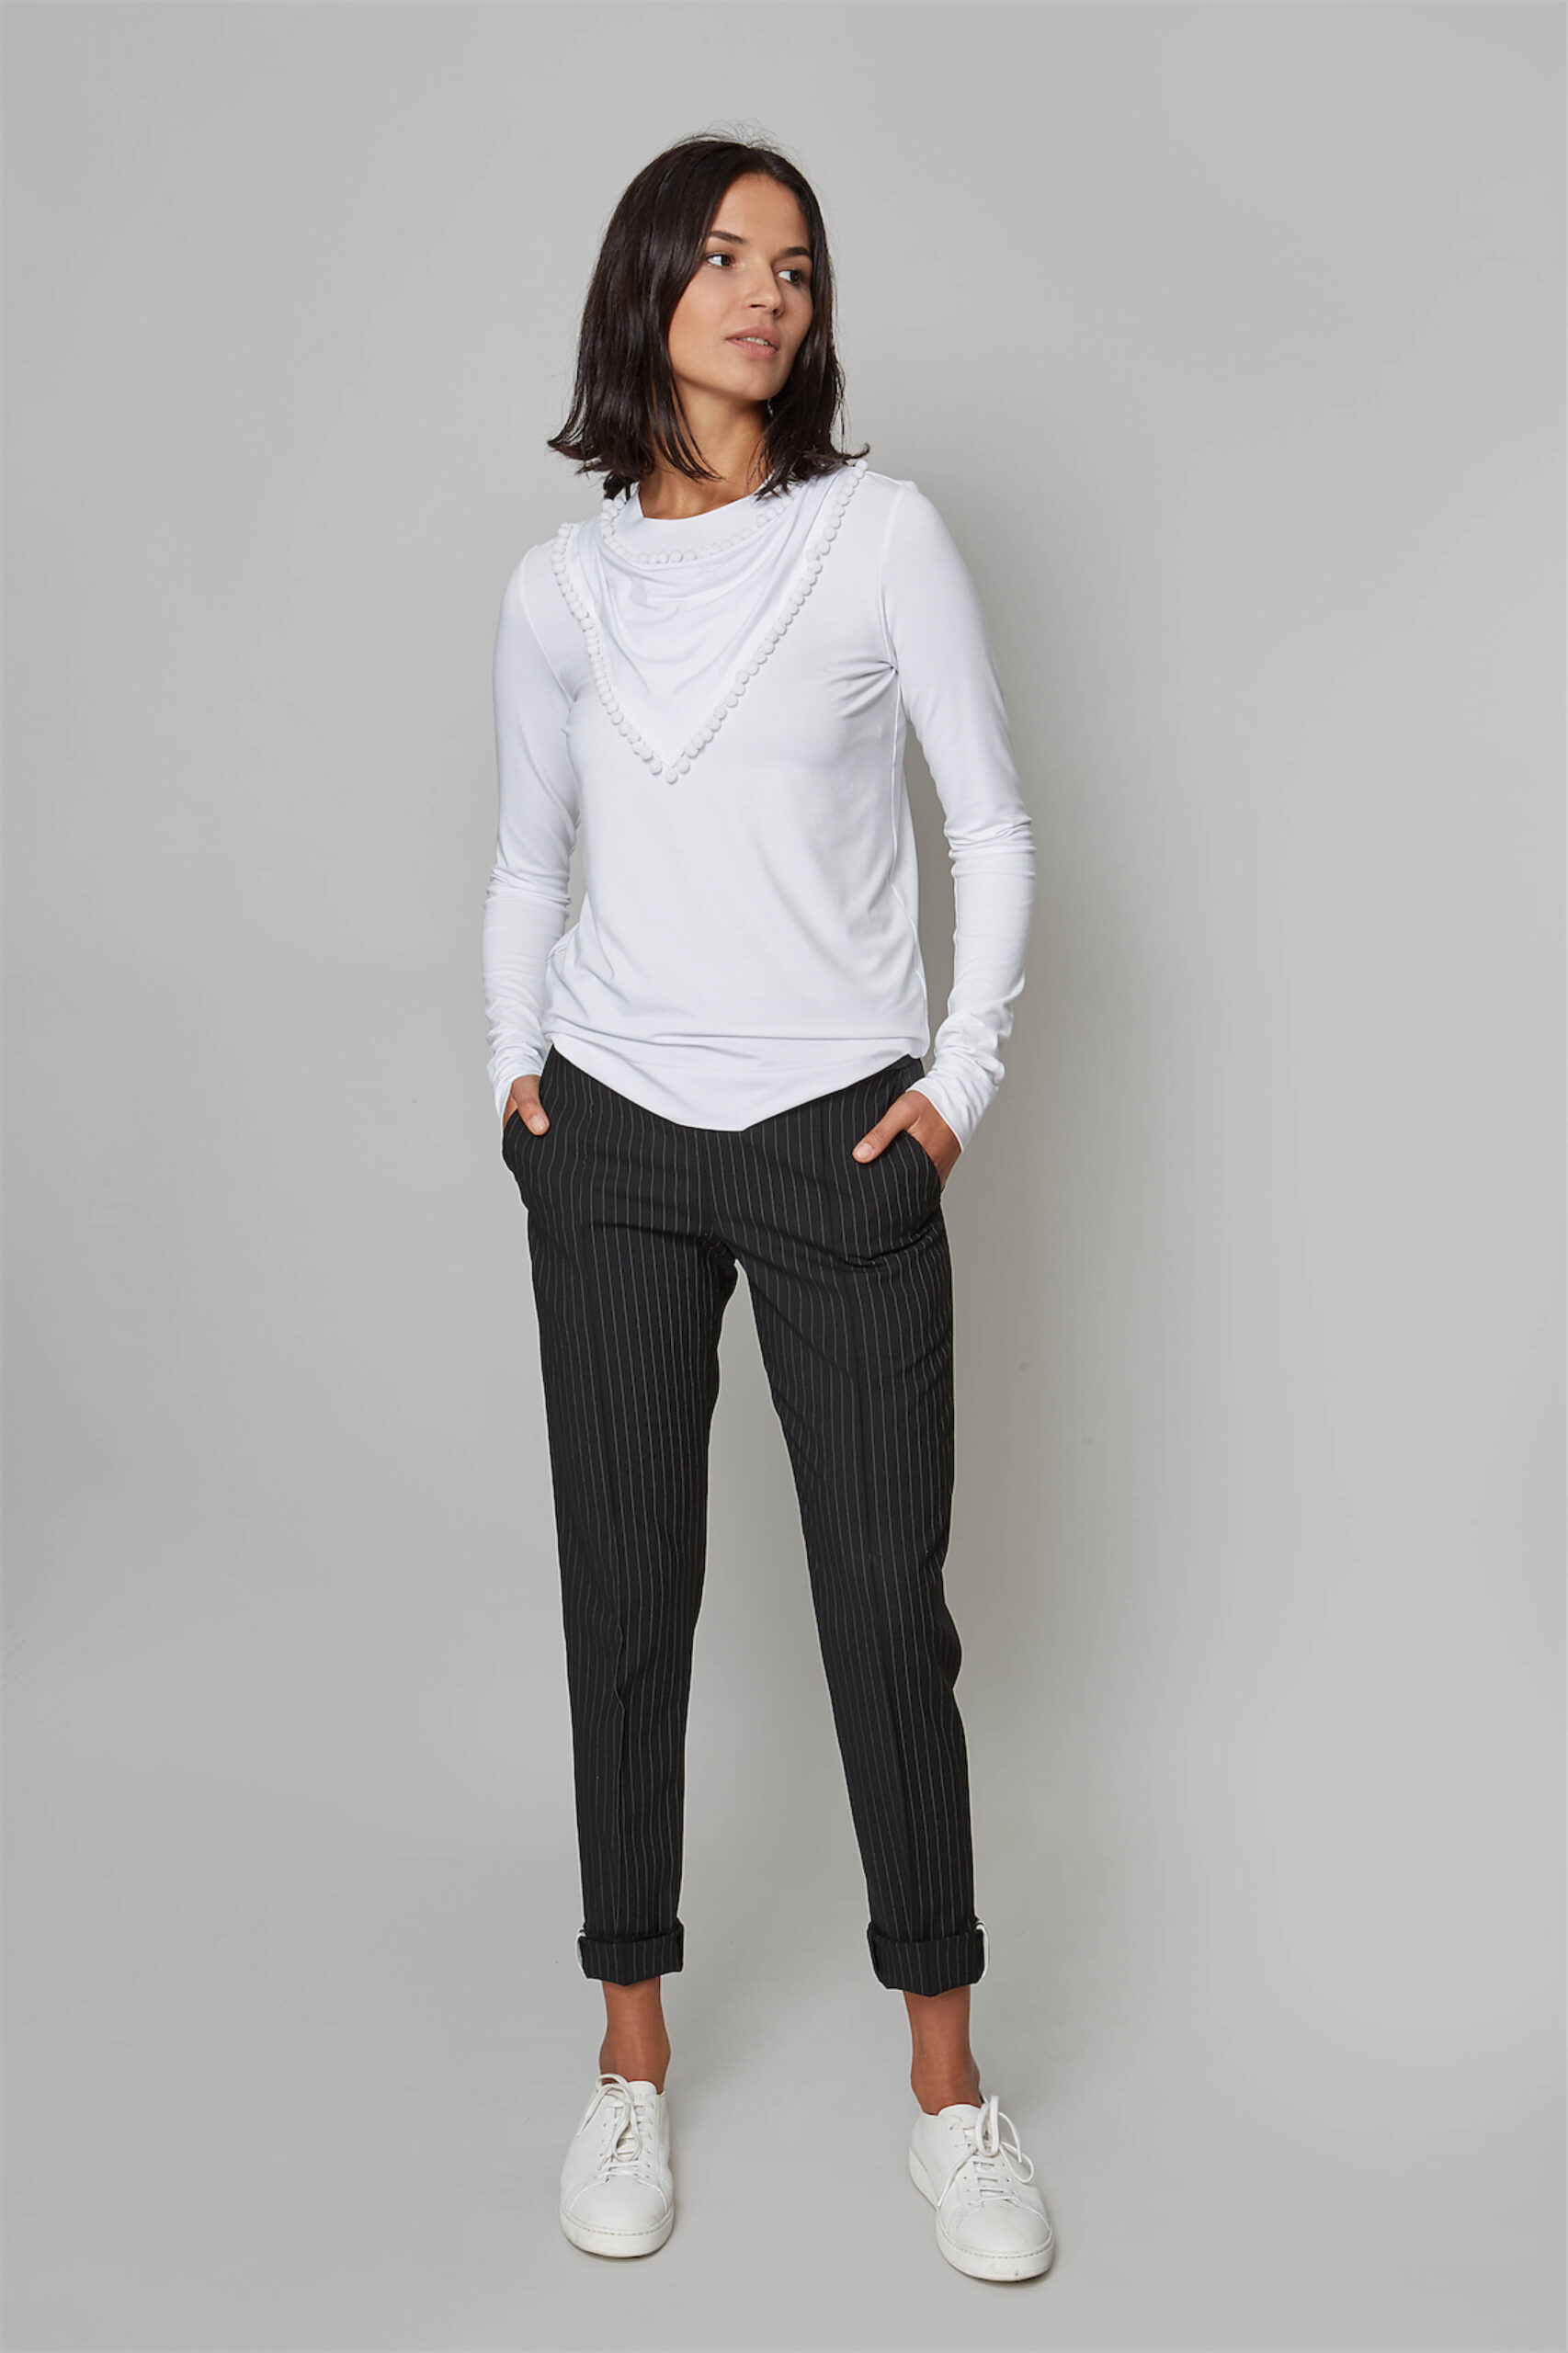 58 LACERTA T SHIRT 49 CRATER TROUSERS